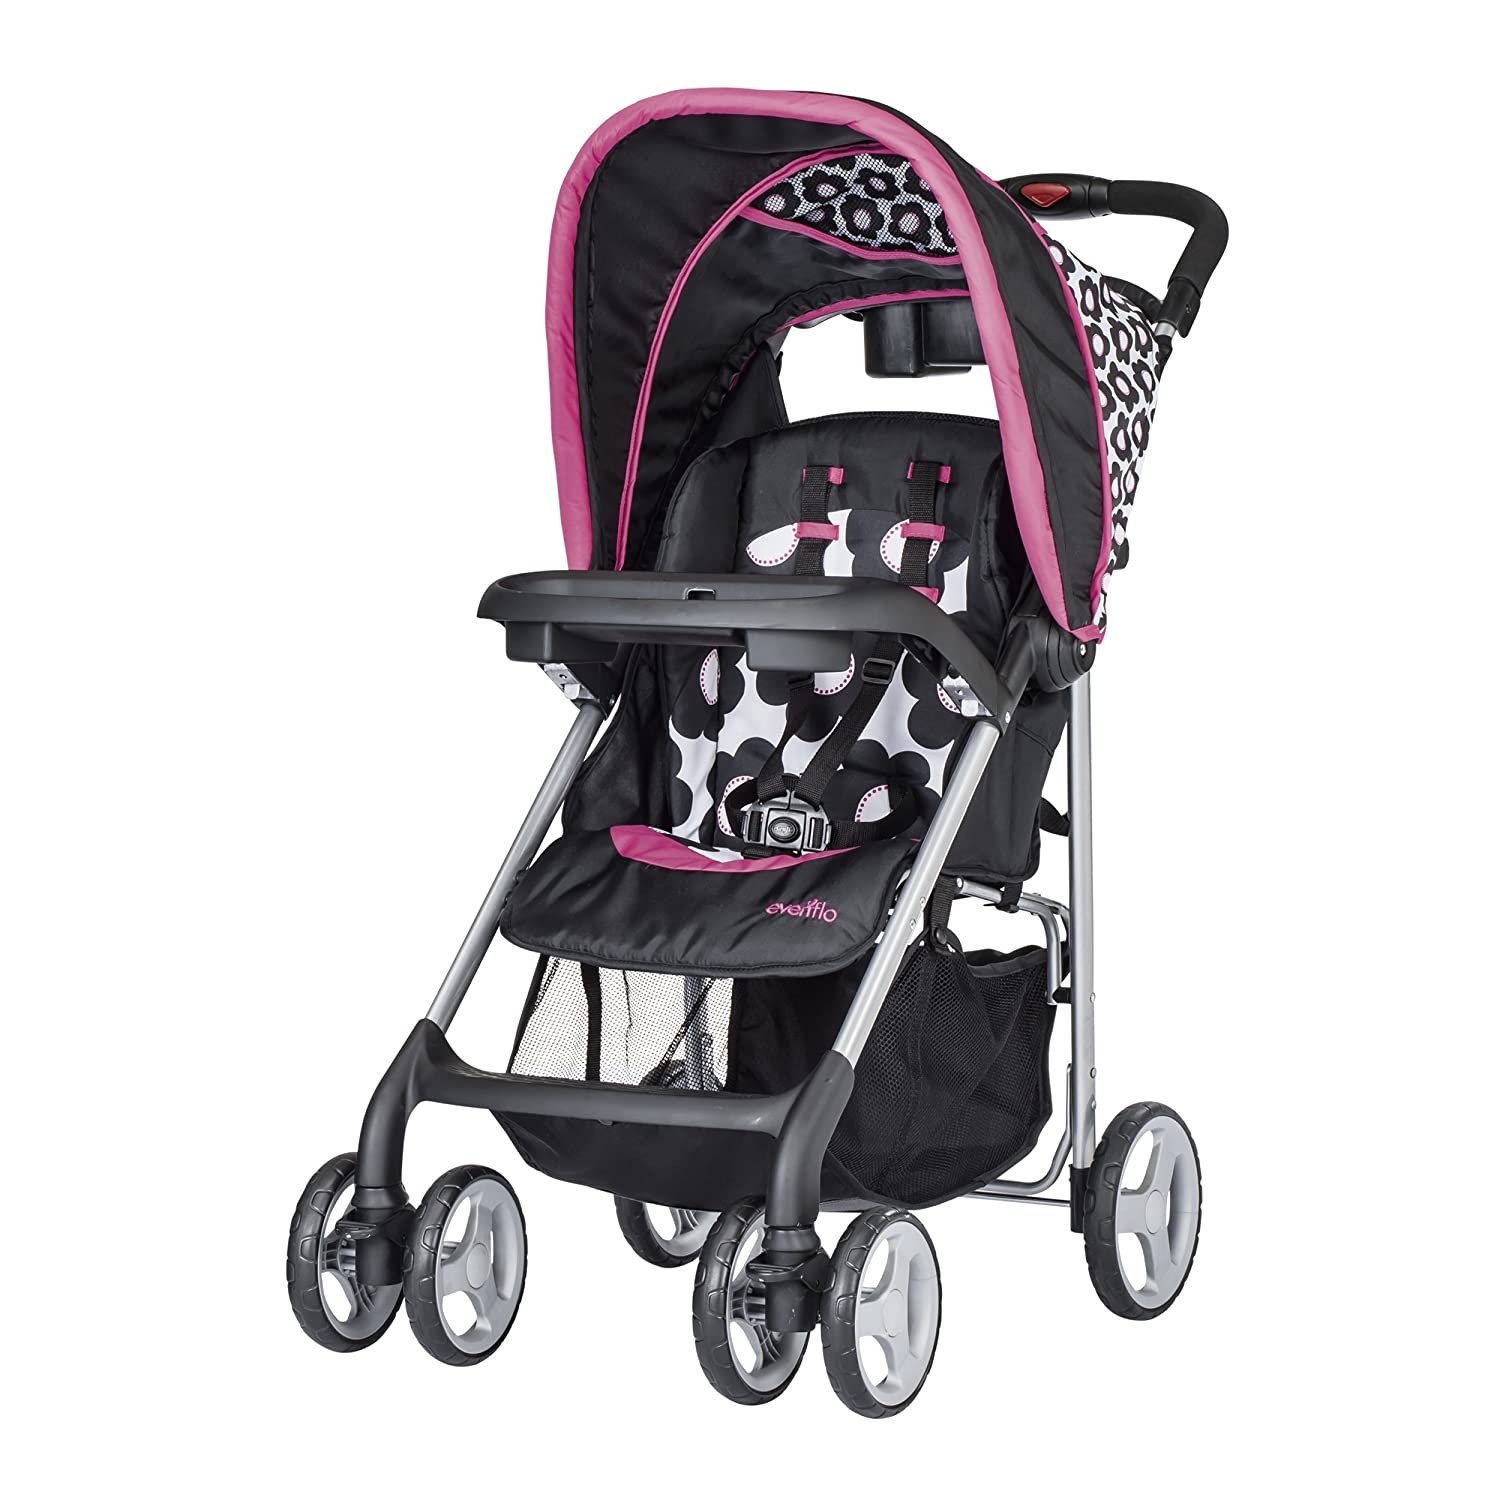 infant safety car seat baby stroller travel set bassinet folding kid toddler new ebay. Black Bedroom Furniture Sets. Home Design Ideas